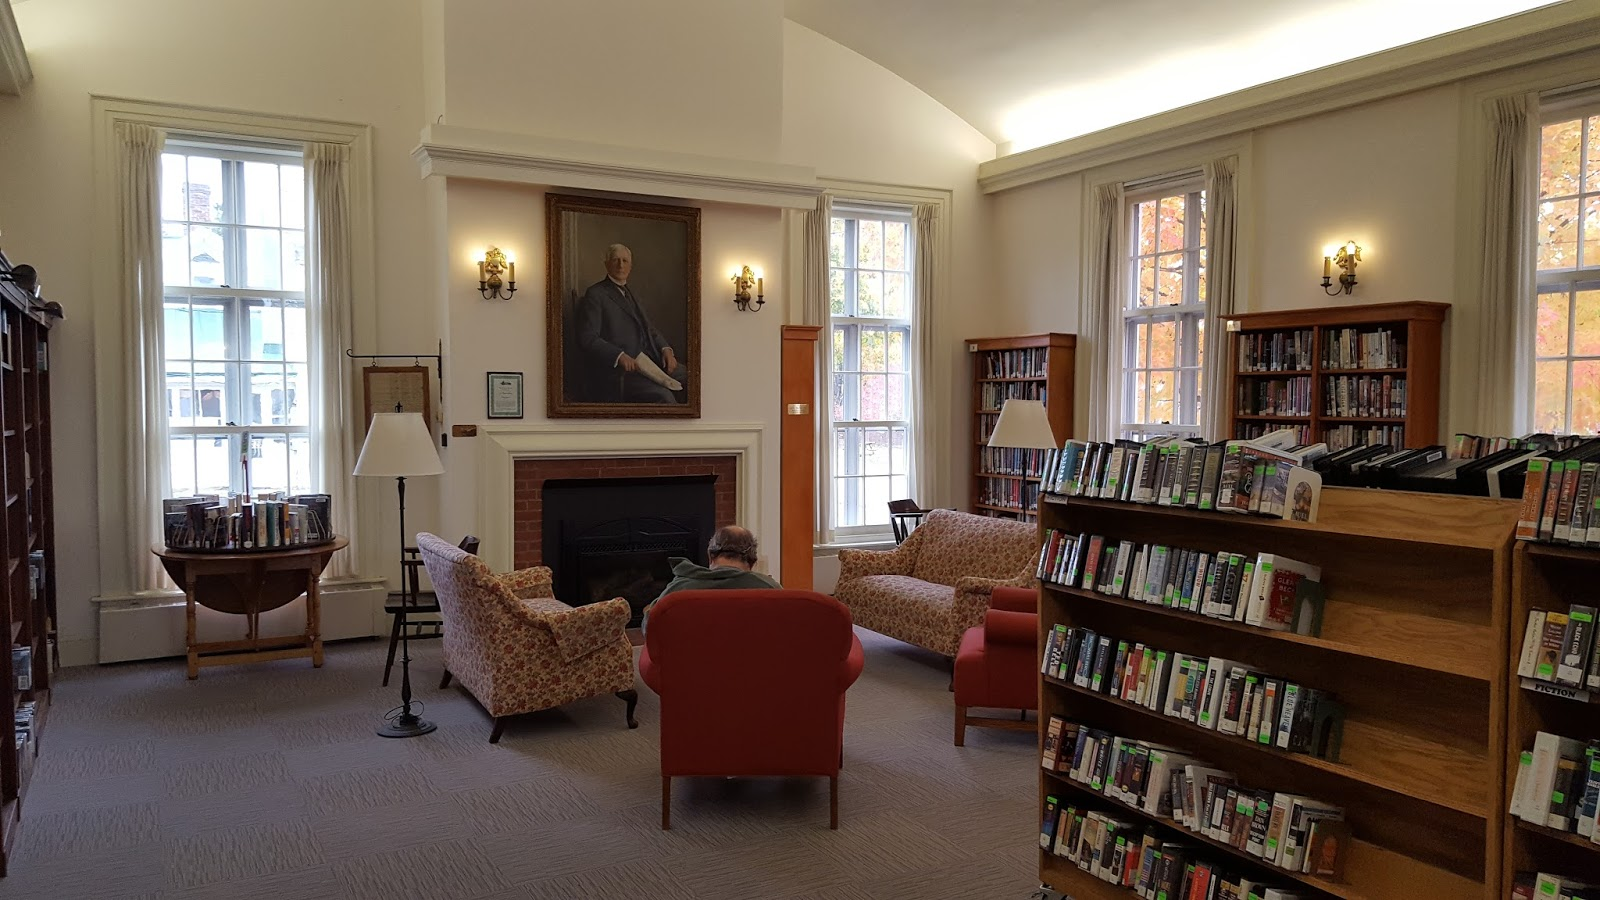 Library matters vermont for The family room vermont